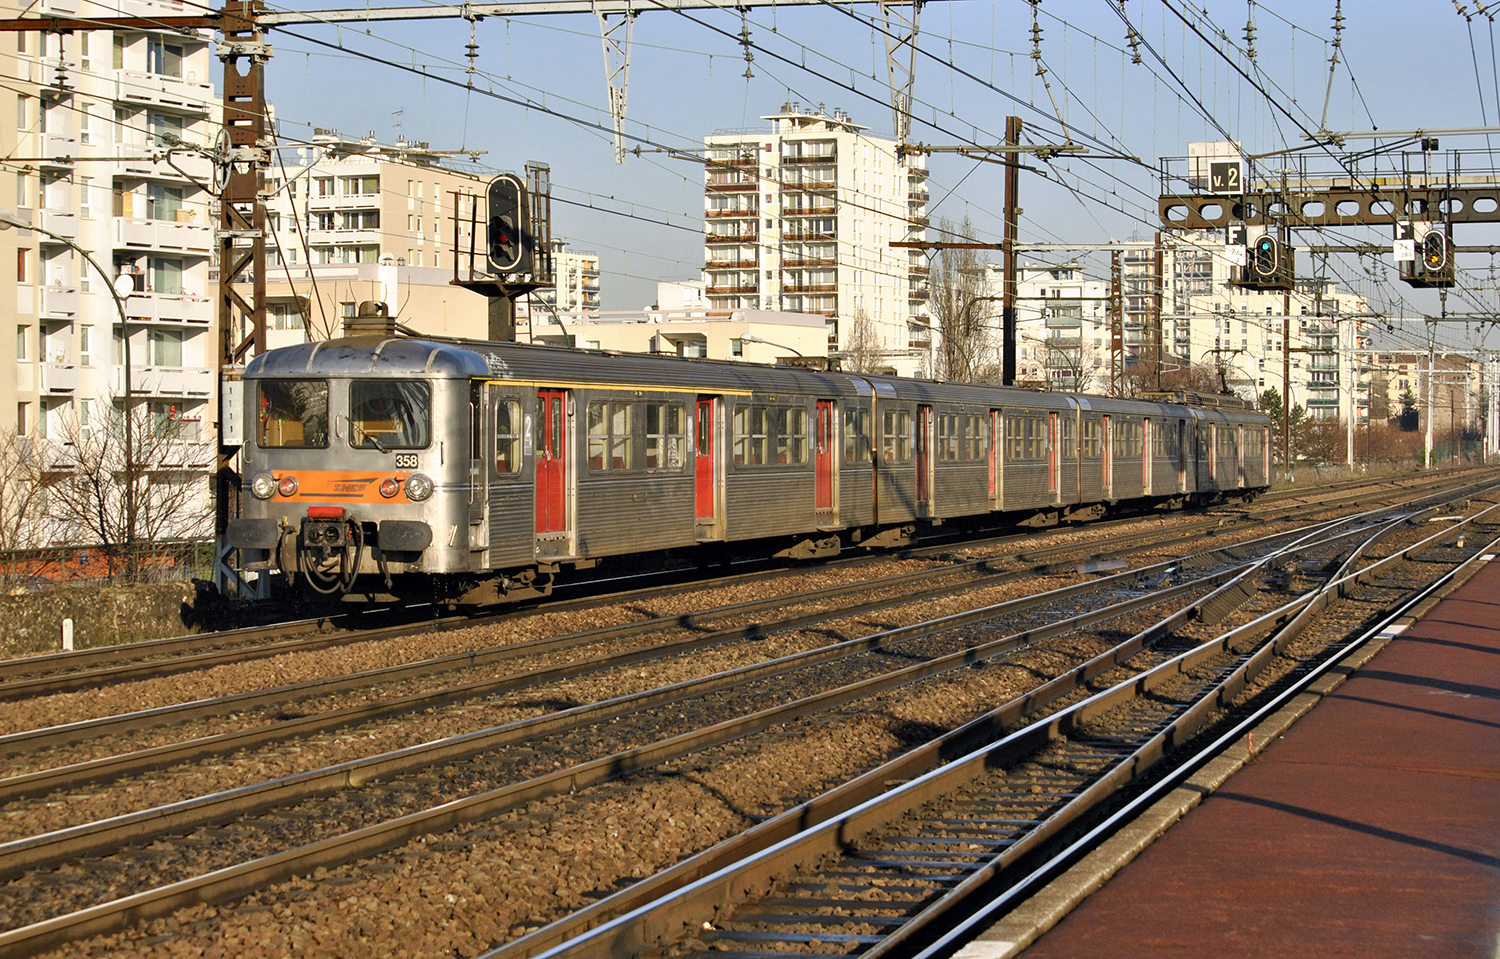 File:SNCF Z 5300 5358 (8523014016).jpg - Wikimedia Commons